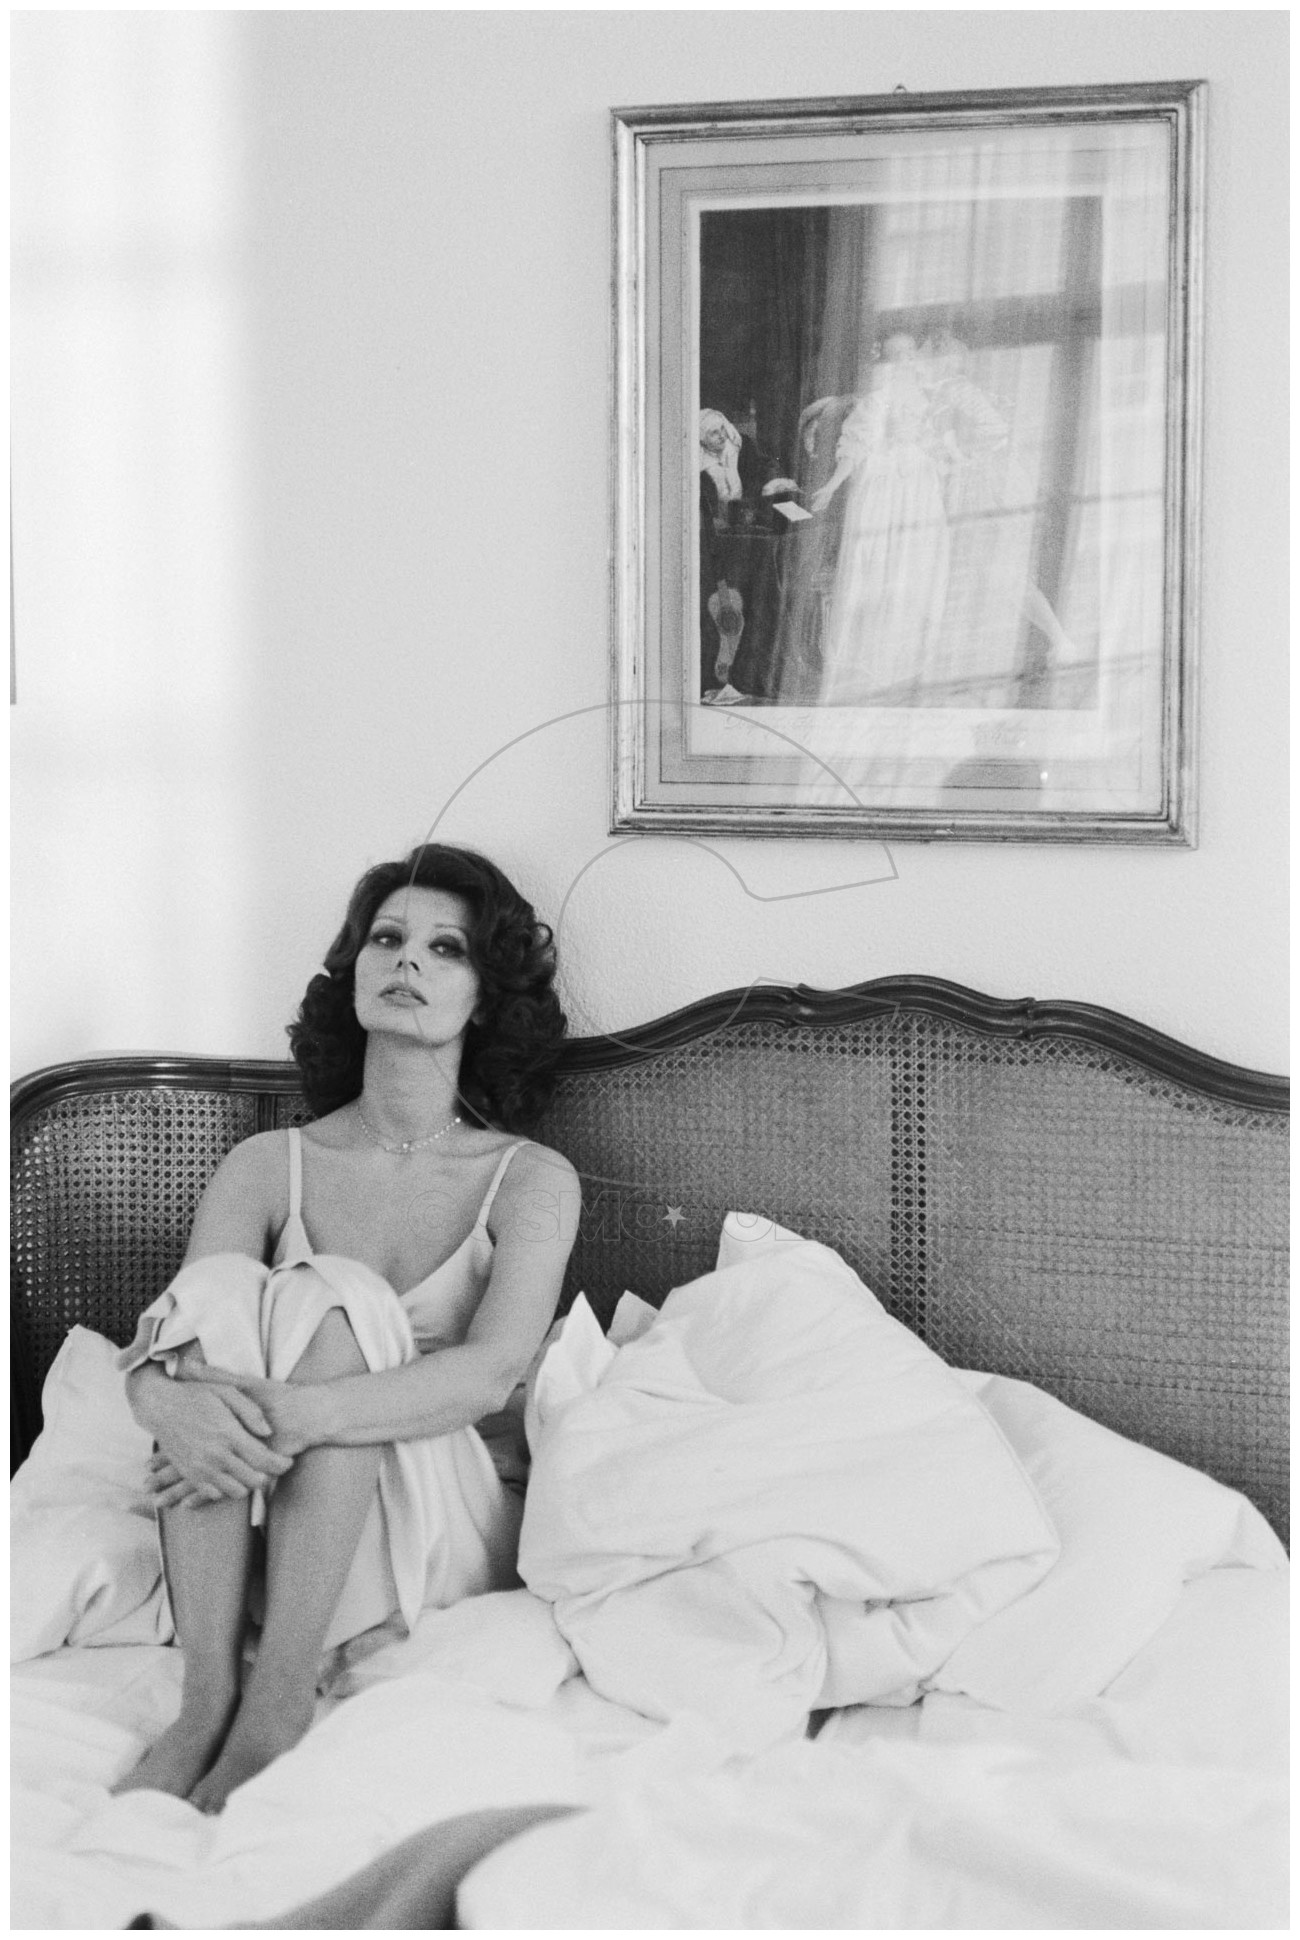 Actress Sophia Loren sitting in an unmade bed. (Photo by Terry O'Neill/Getty Images)